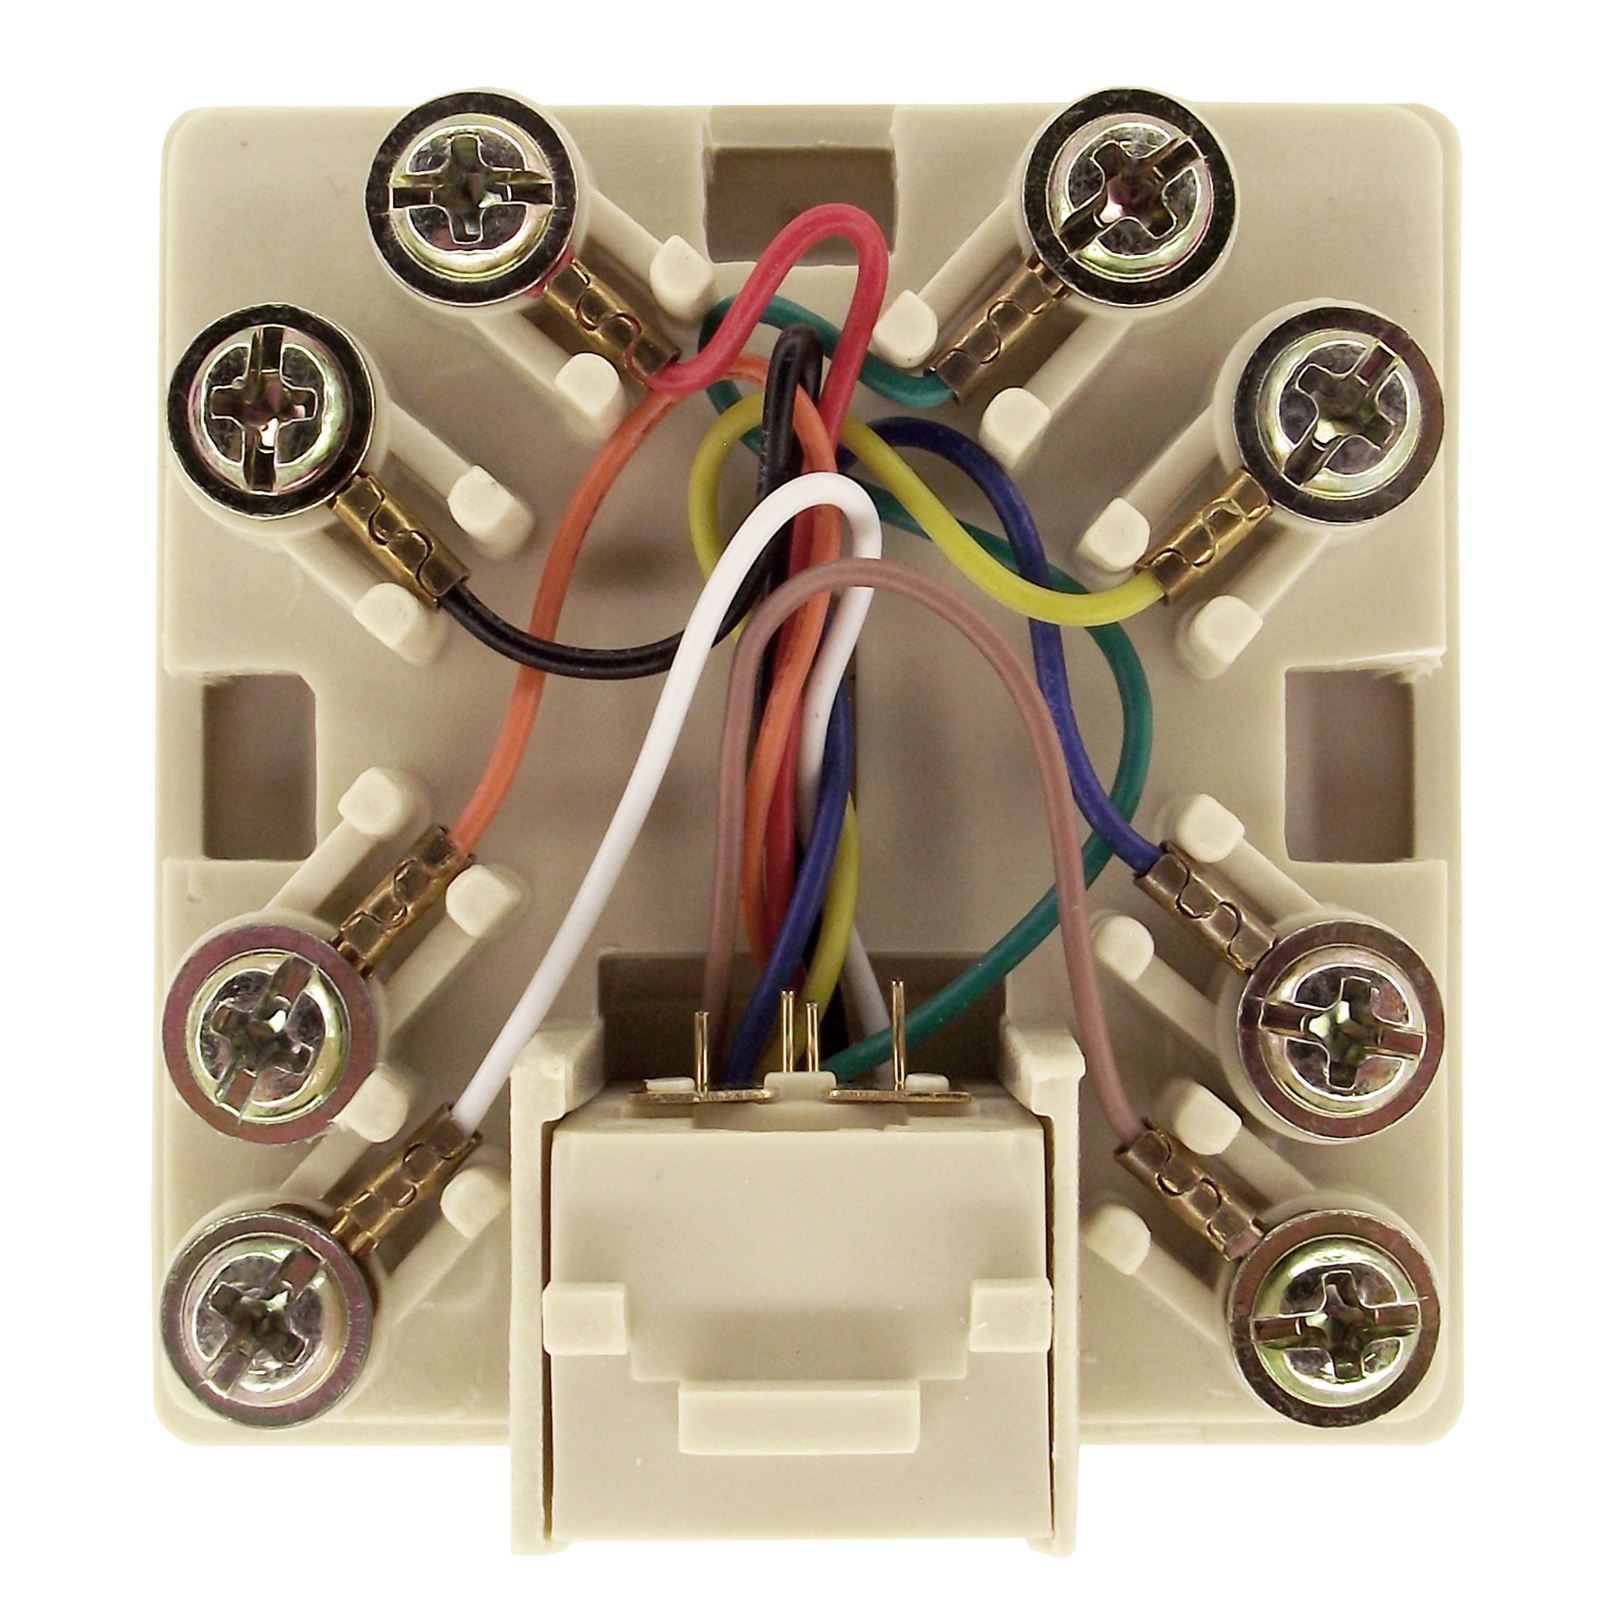 Rj 31x Jack Alarm Diagram Another Blog About Wiring Ford F550 For Alt Rj31x Opinions U2022 Rh Voterid Co